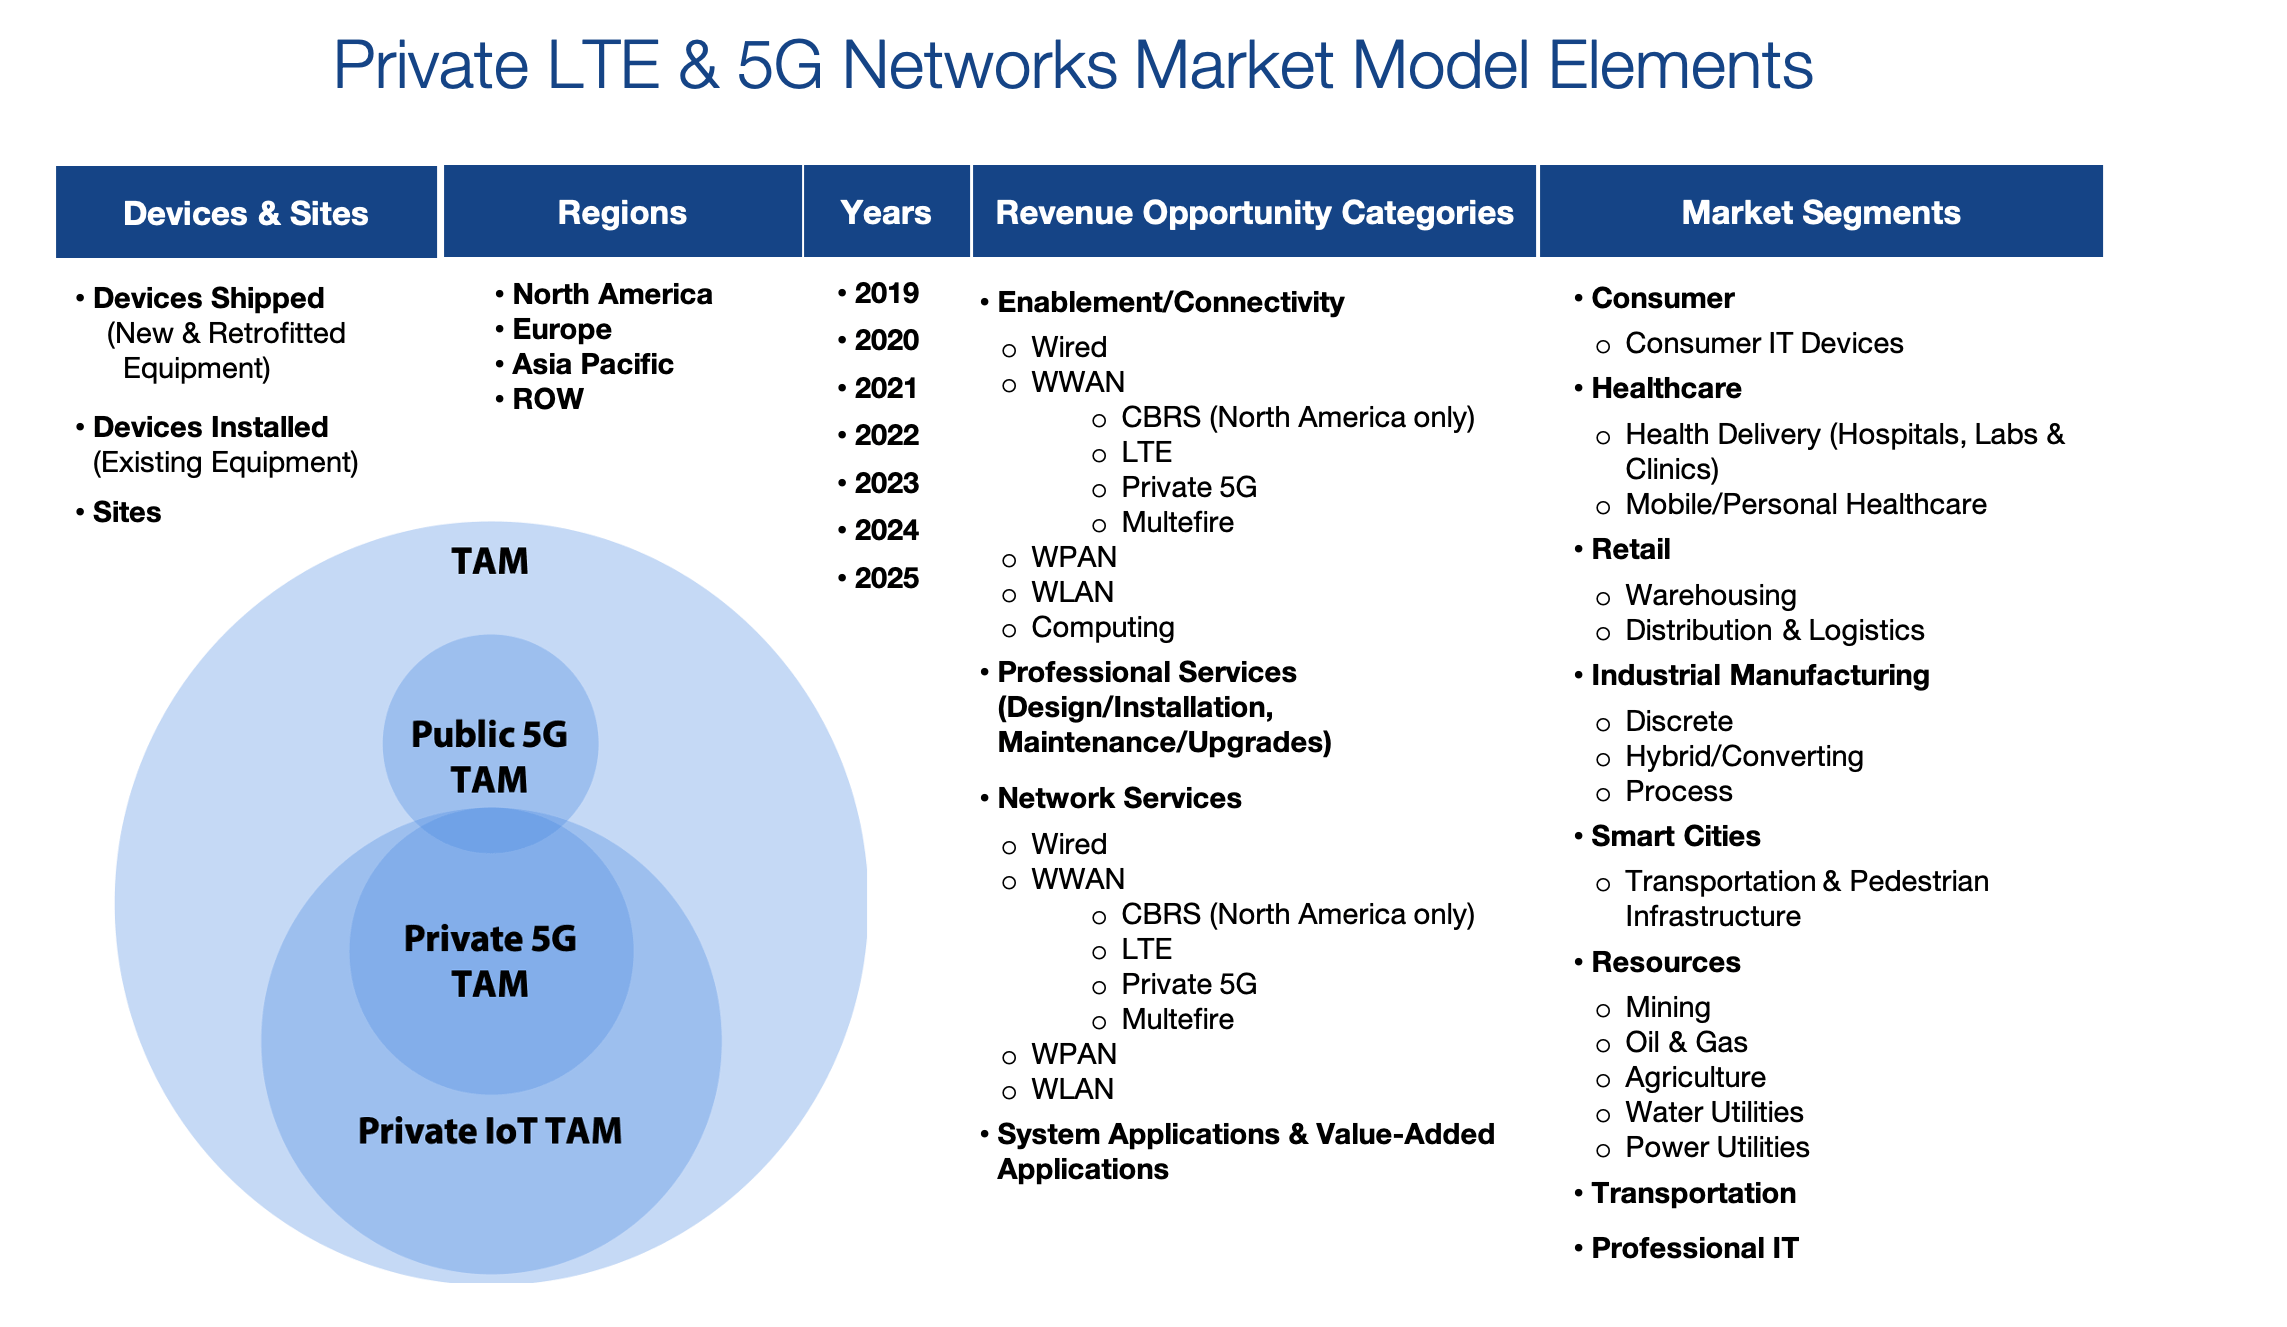 Private LTE and 5G network market model elements